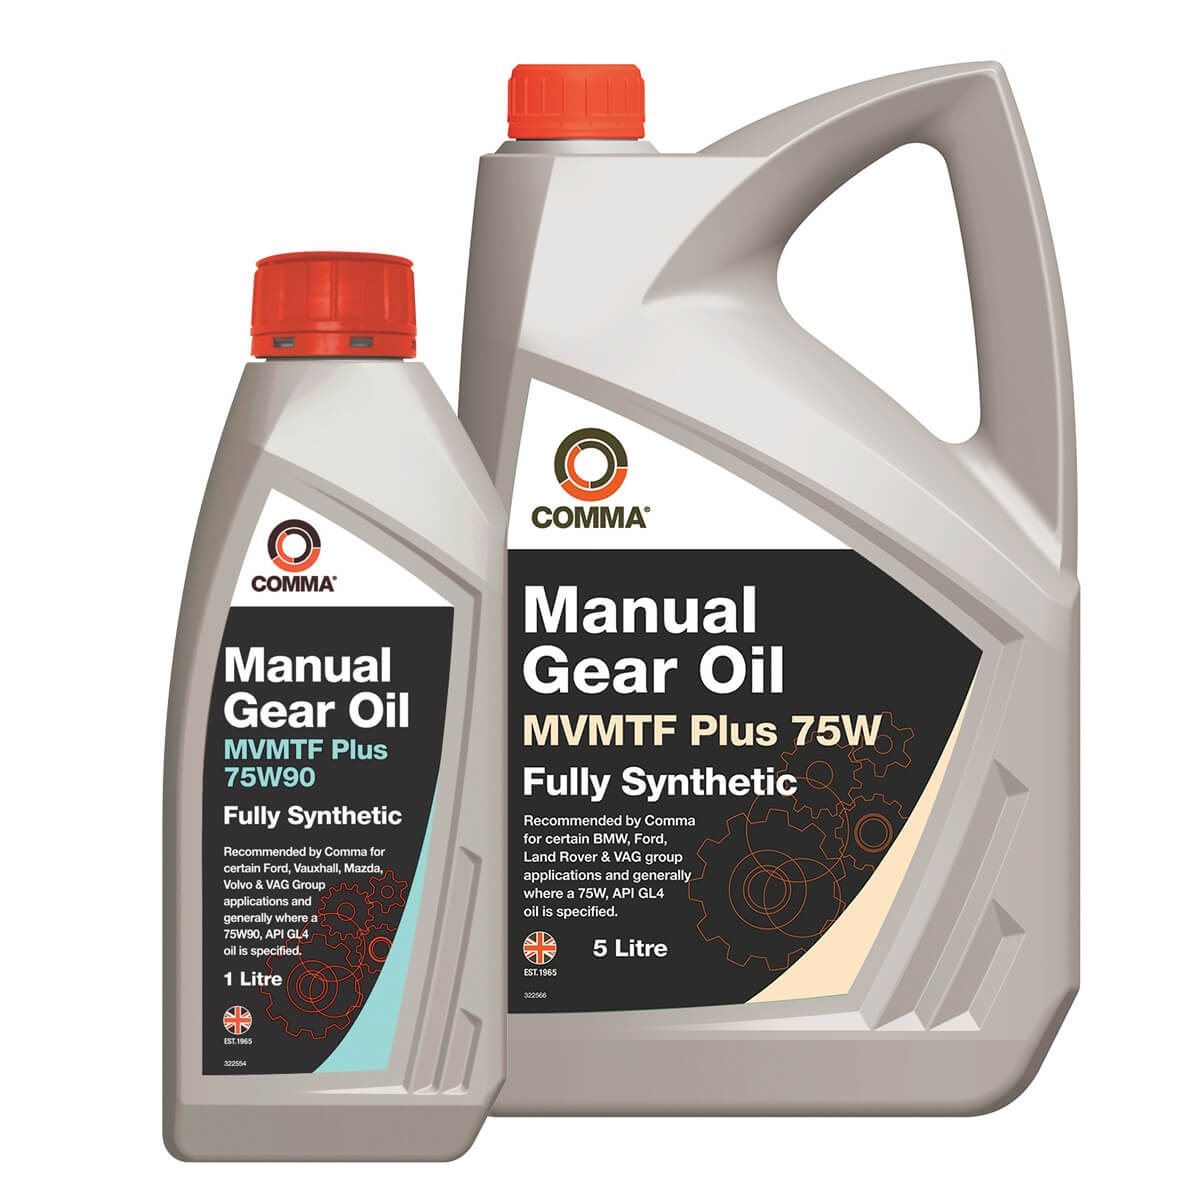 AUDI A2 Manual Transmission Oil